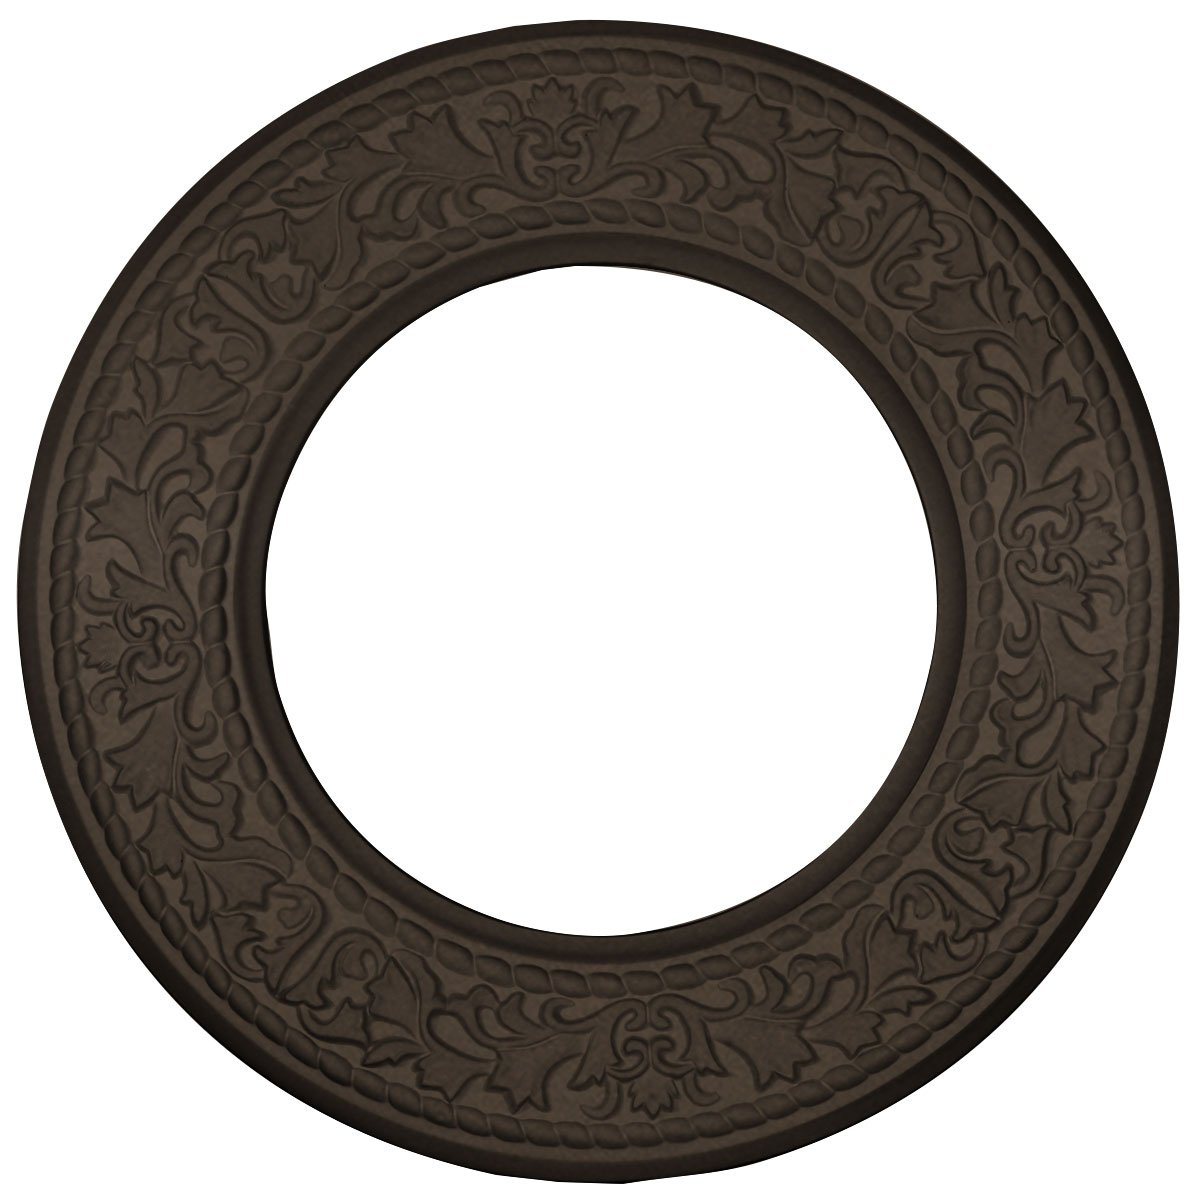 Ekena Millwork CM13BLBZS 13 3/8'' OD X 7 1/2'' ID X 3/4'' P Jet Blackthorn Ceiling Medallion fits Canopies up to 7, Bronze by Ekena Millwork